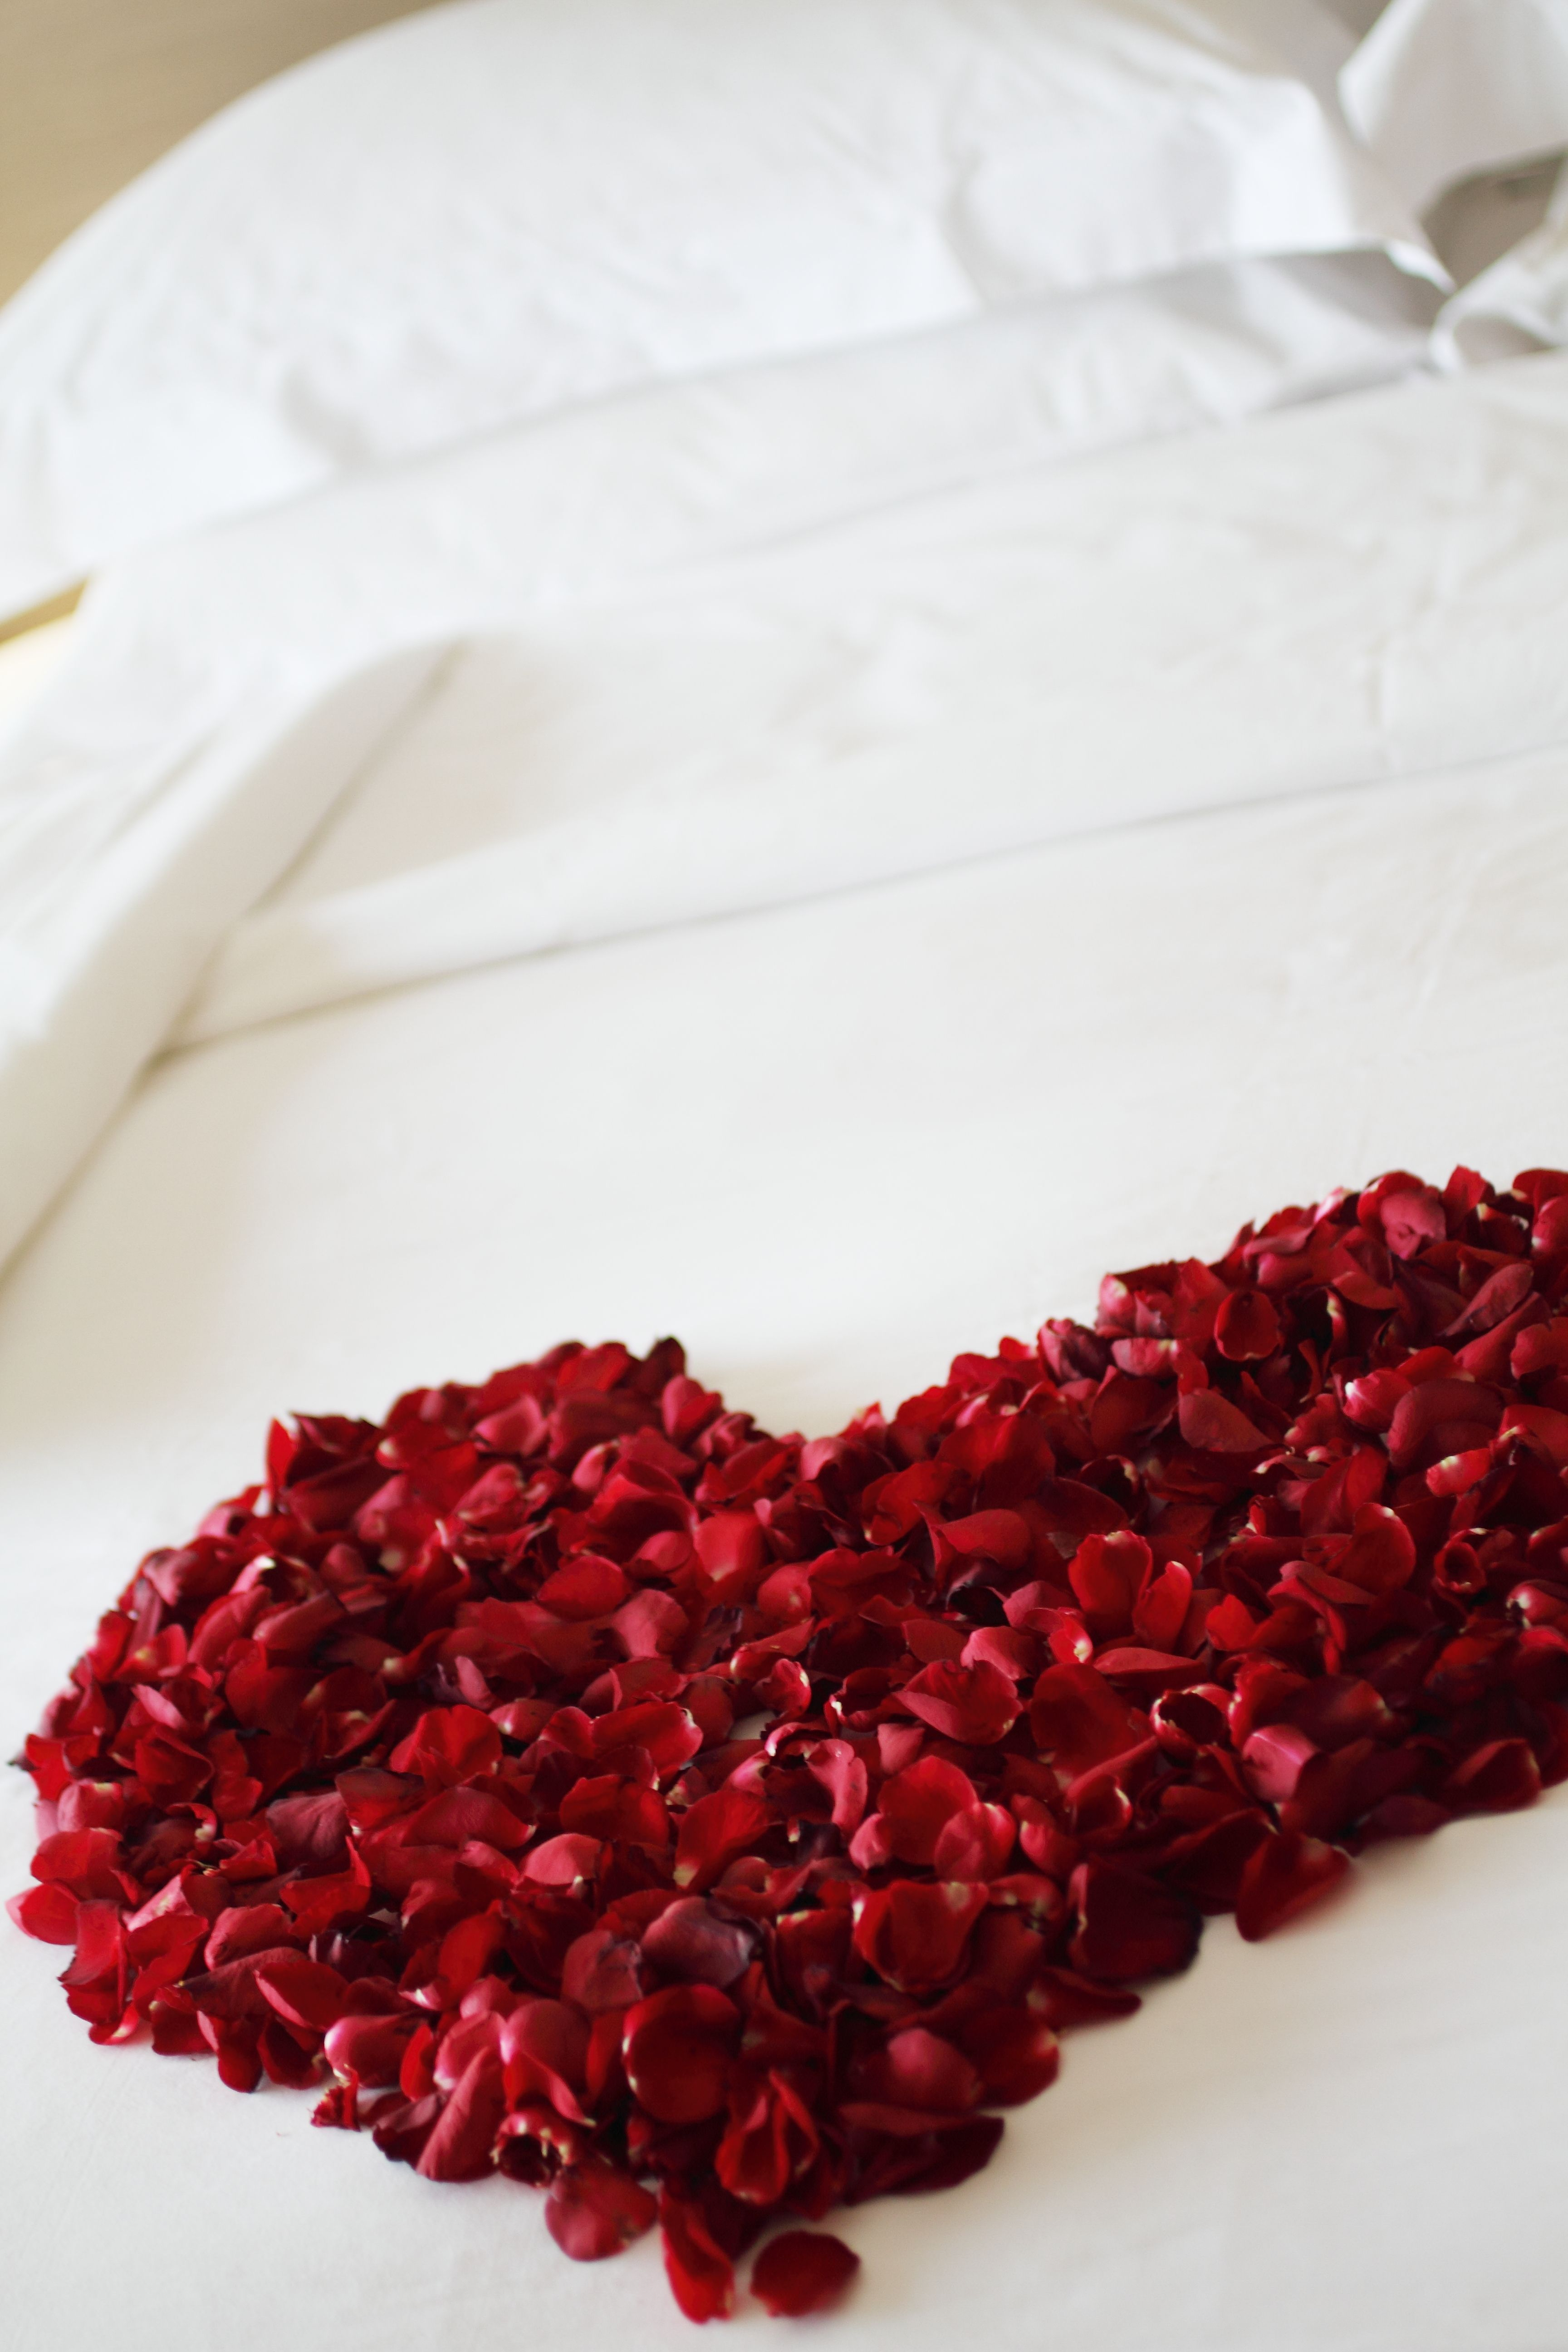 Romantic bedroom rose petals - Even More Work With Petals But Makes For A Gorgeous First Night In Your